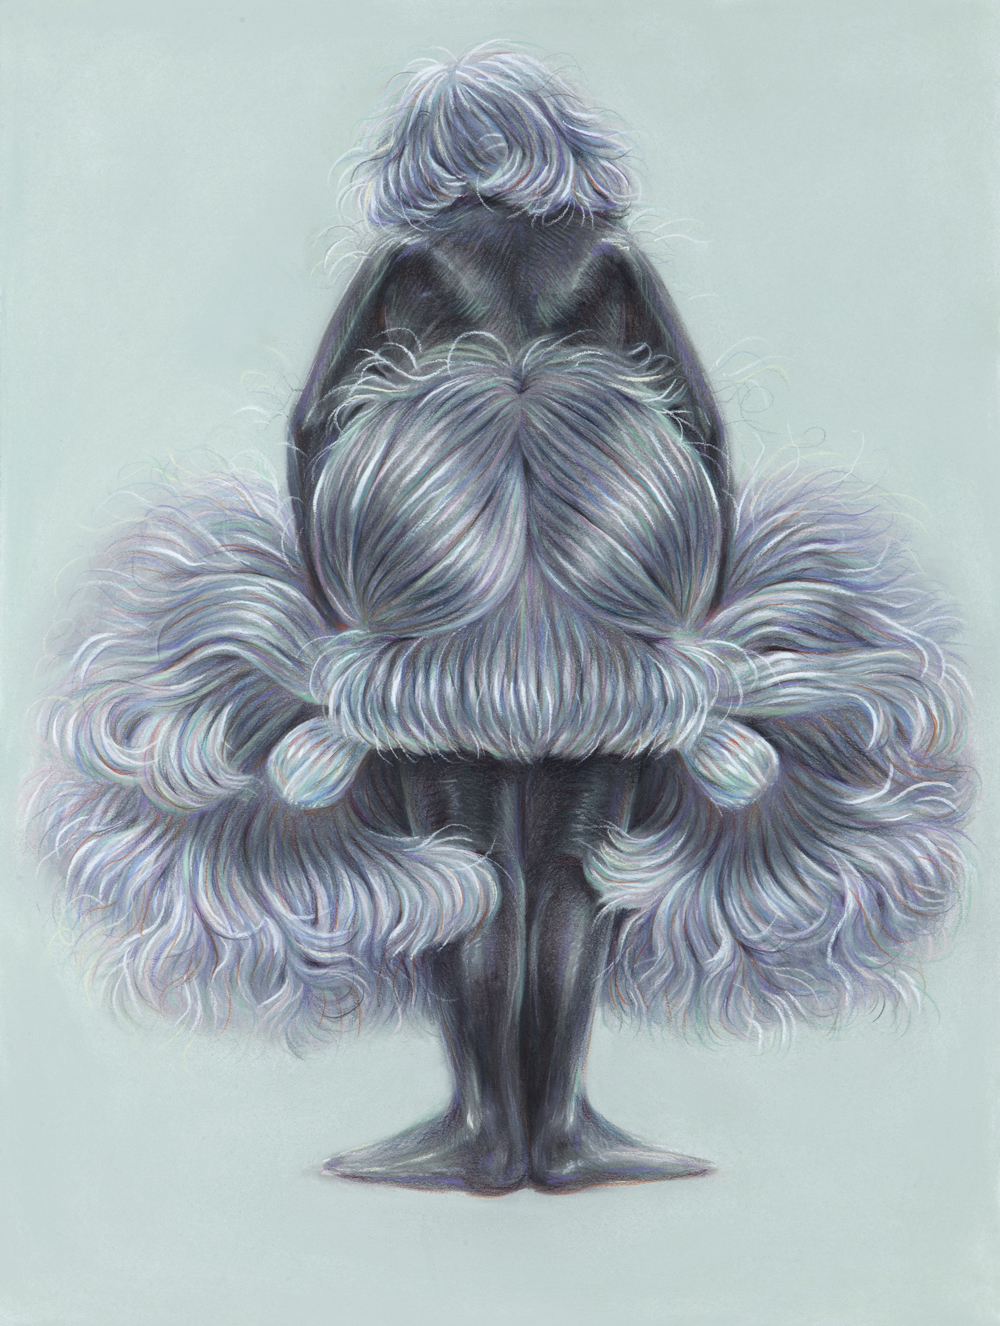 Wig Gown, 2017, colored pencil on paper, 24 x 18 inches